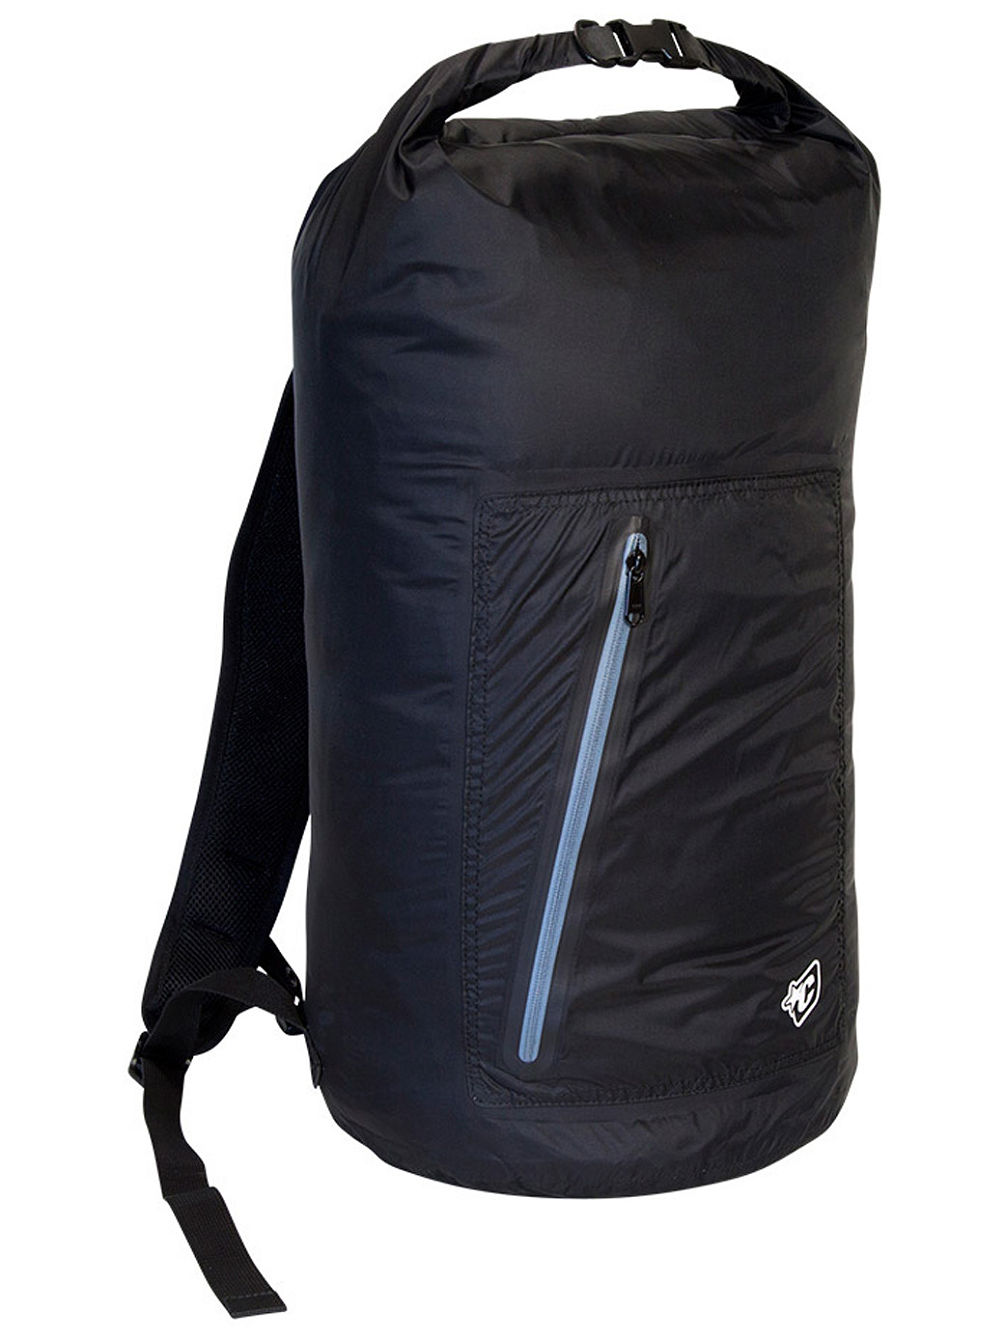 Lite Day Pack Waterproof Surfboard Bag